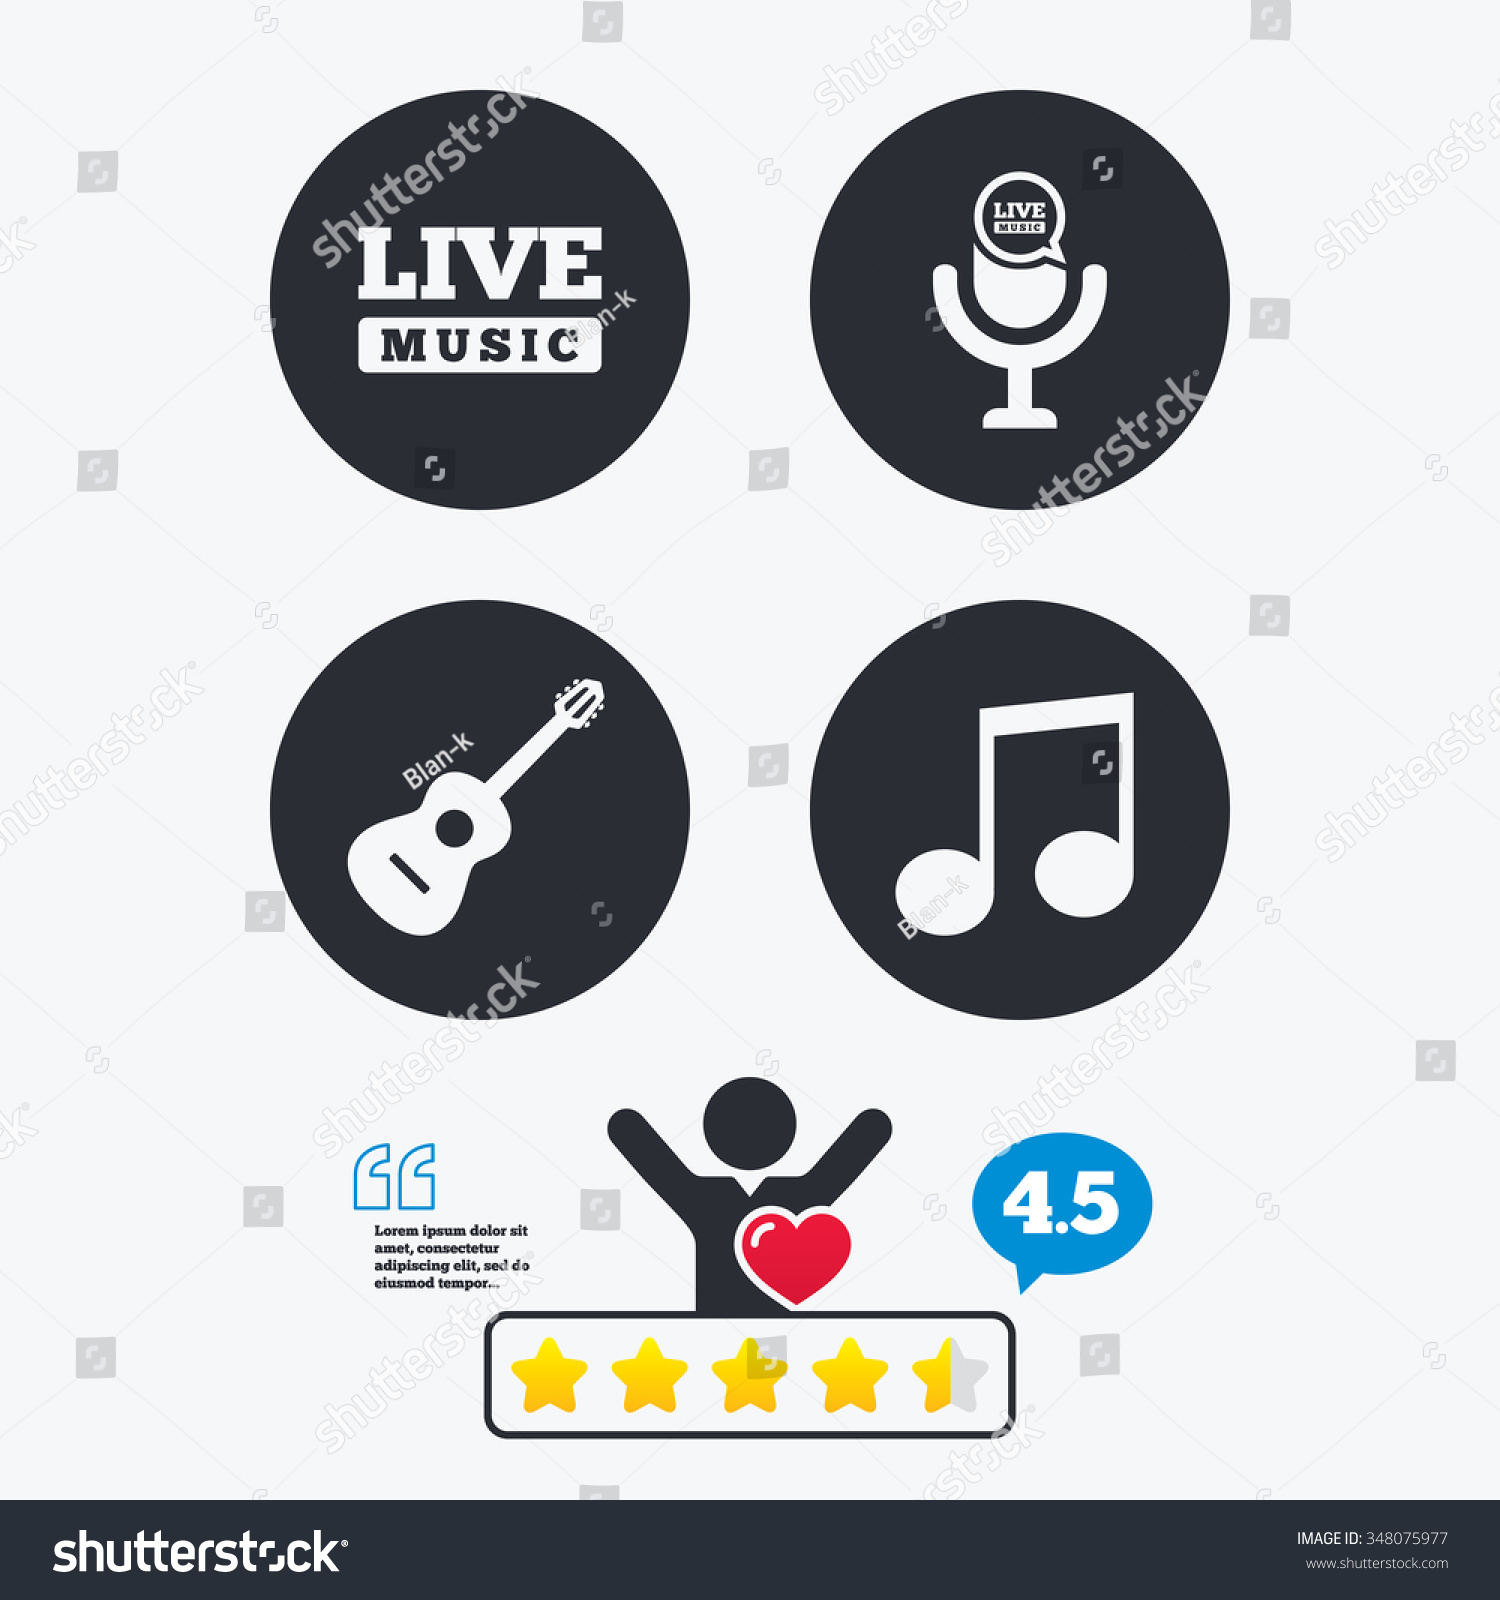 Musical elements icons microphone live music stock vector musical elements icons microphone and live music symbols music note and acoustic guitar signs buycottarizona